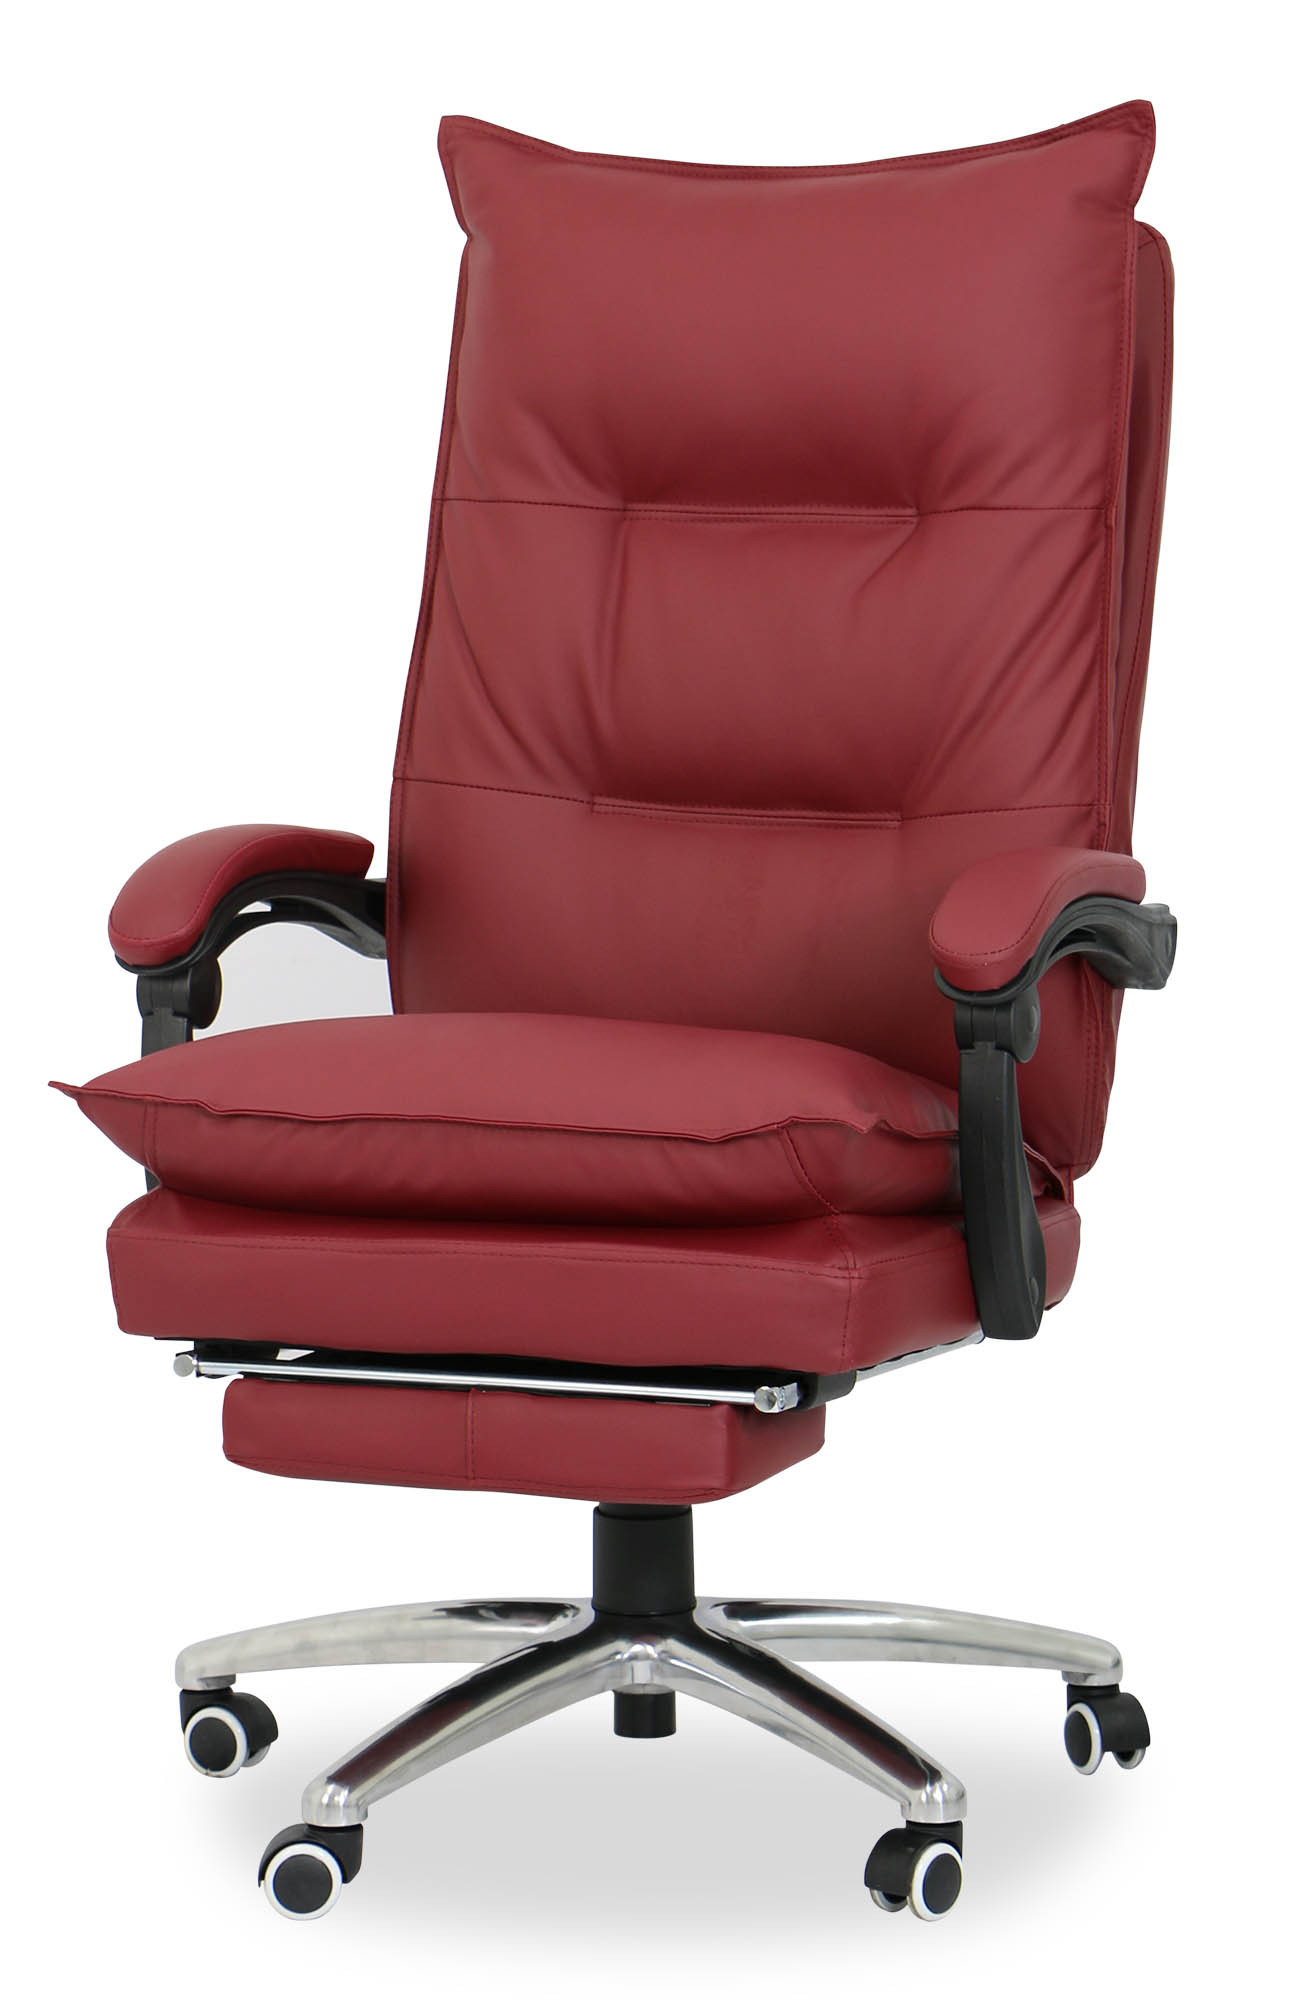 maroon office chairs iron dining deluxe pu executive chair furniture